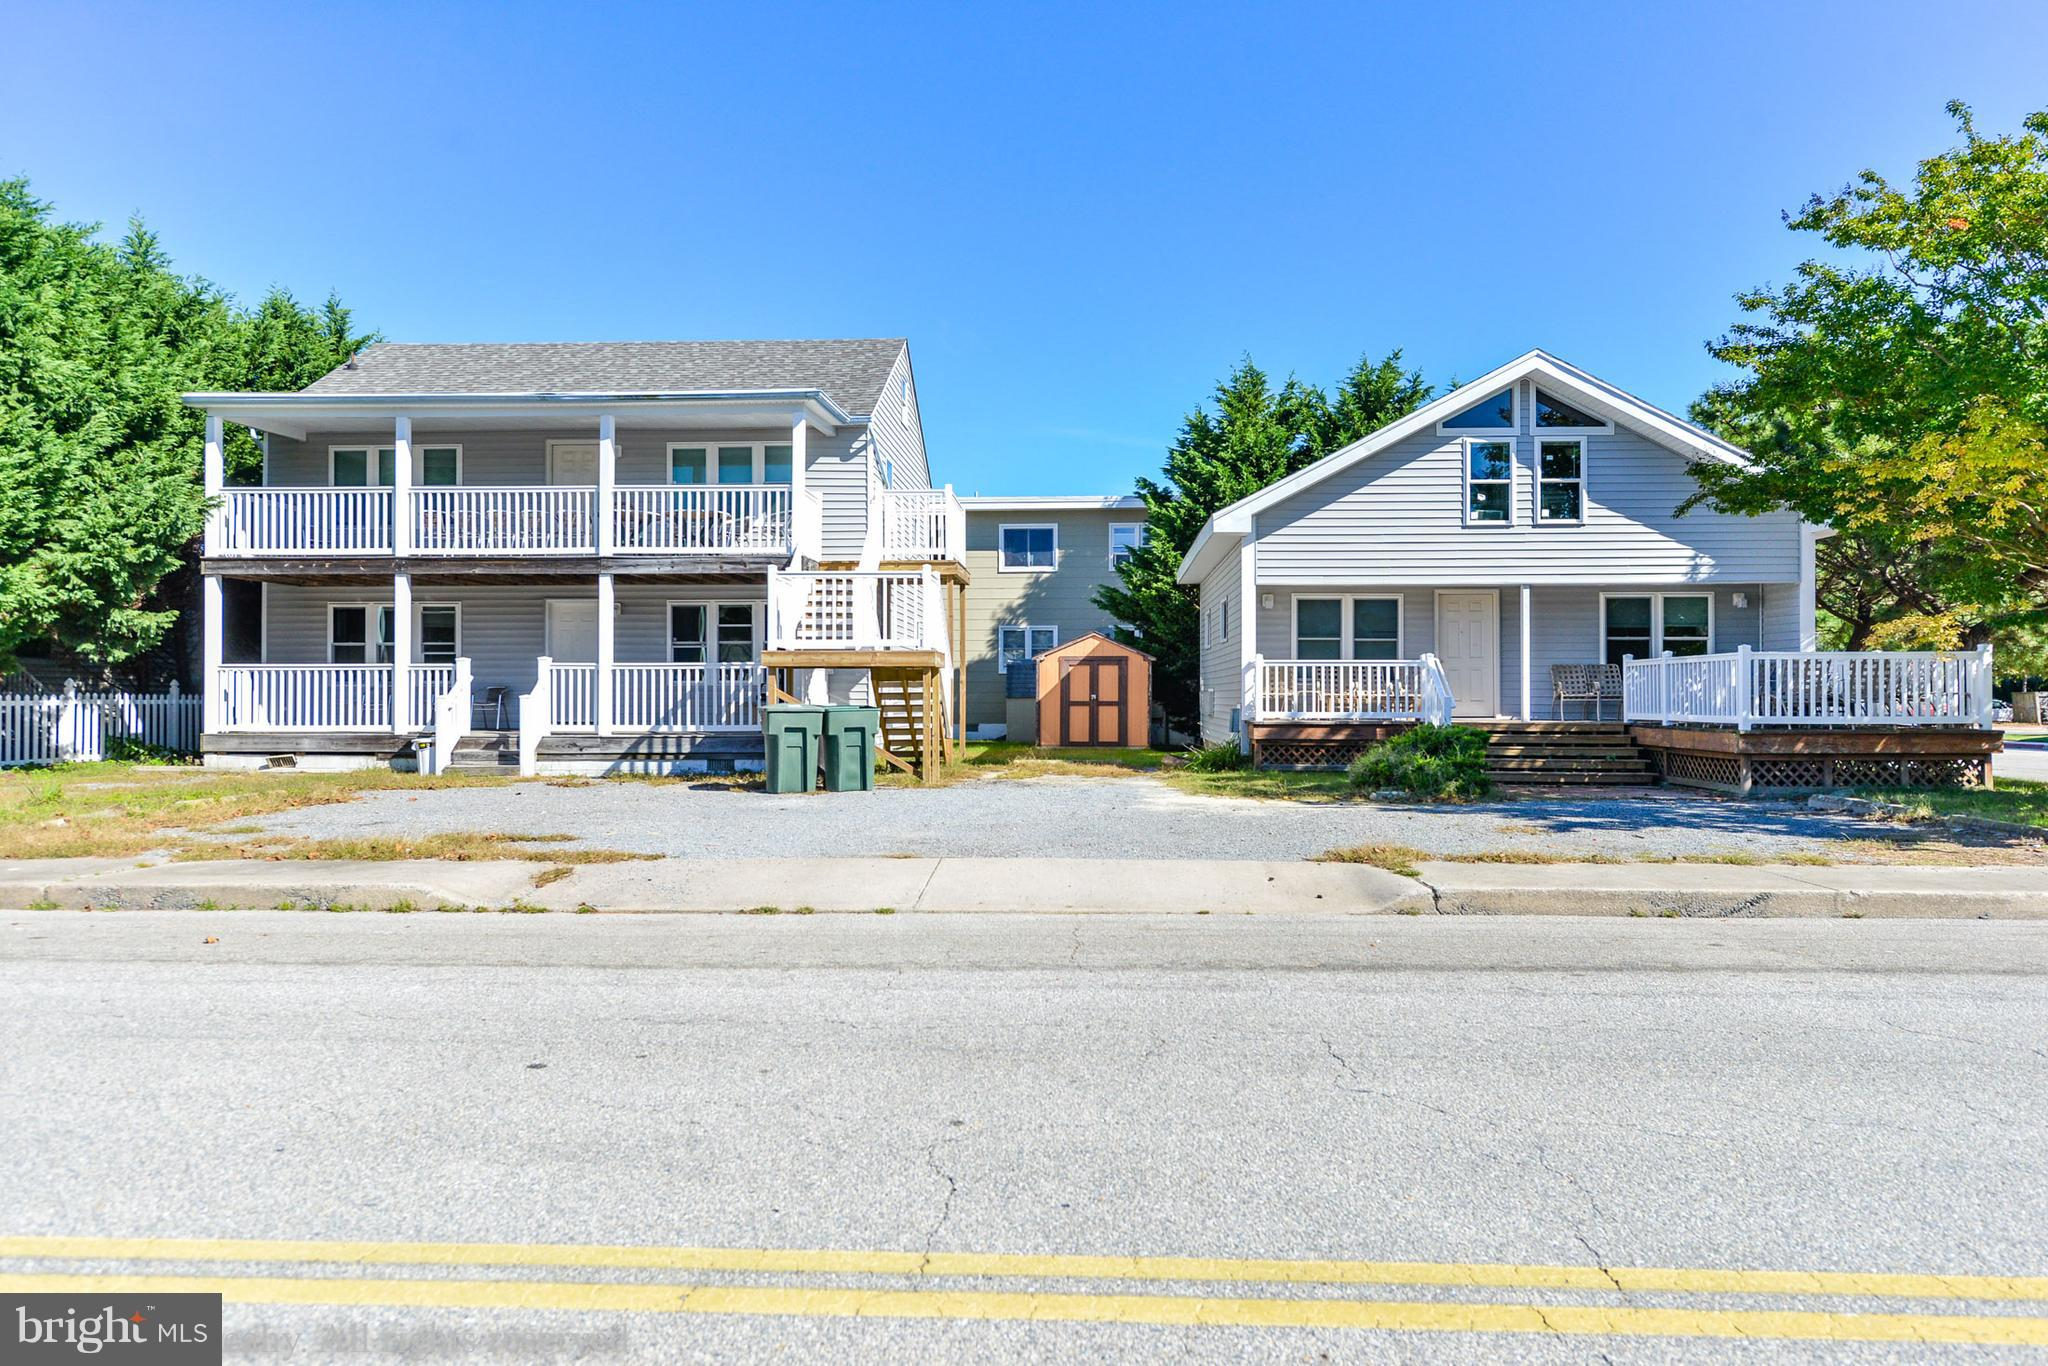 602 SEAWEED LANE, OCEAN CITY, MD 21842